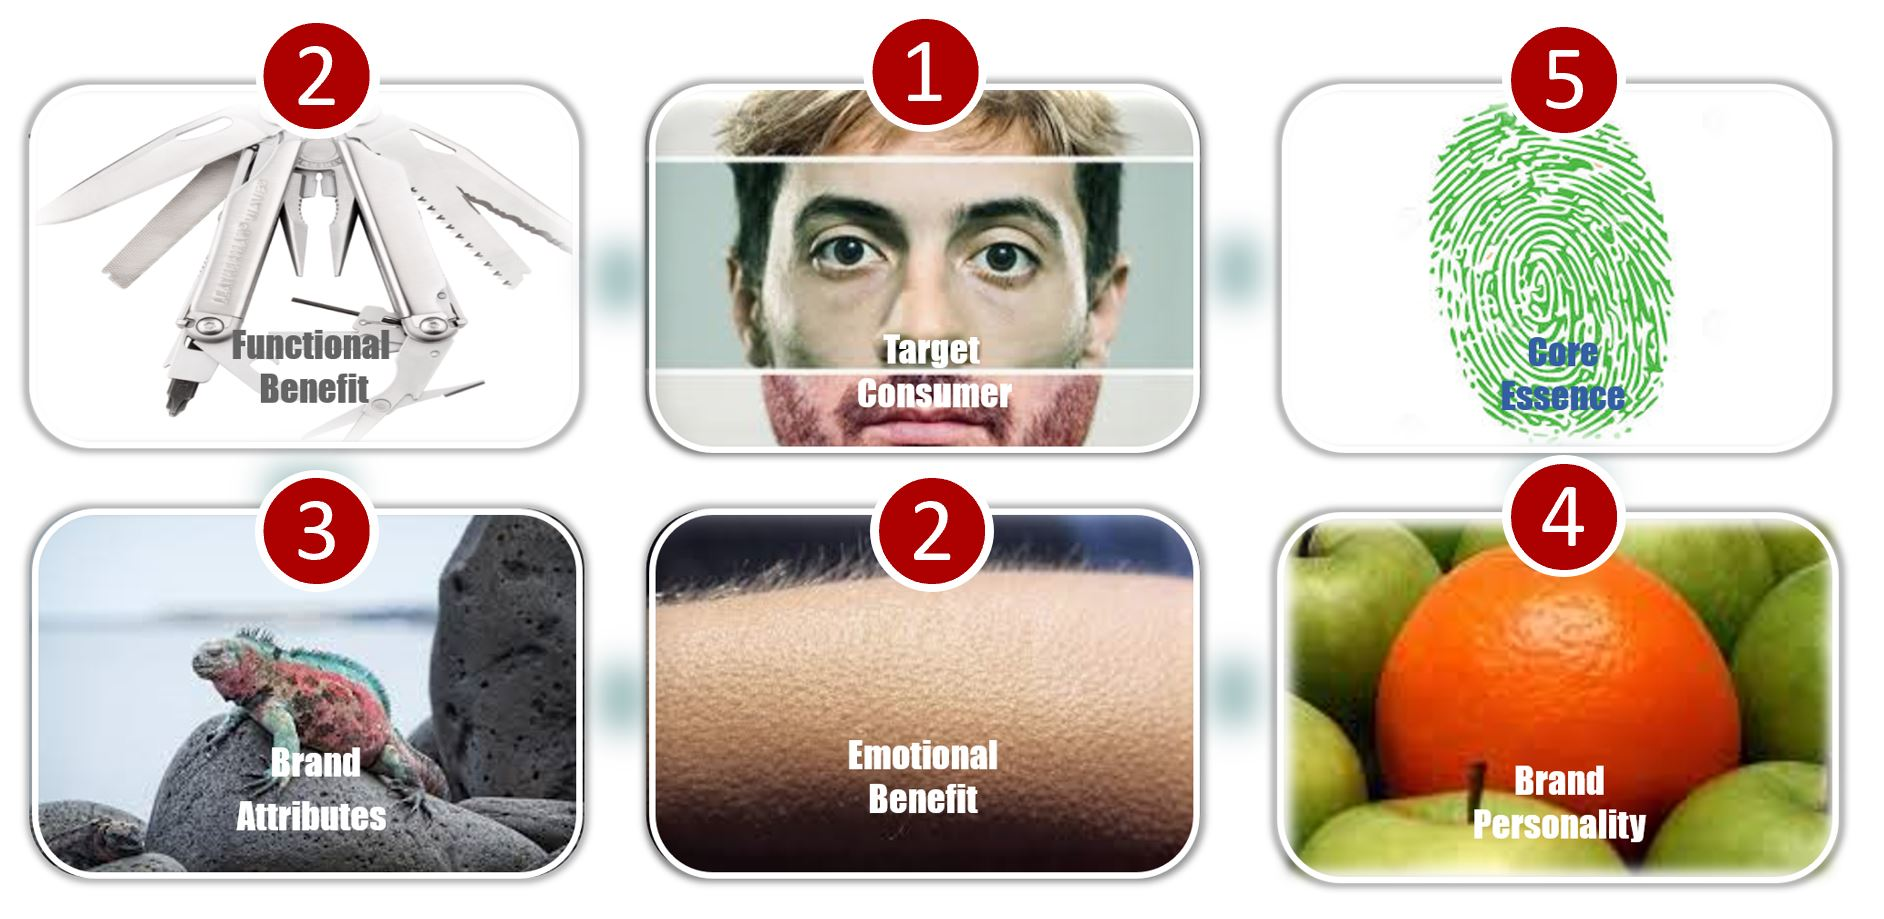 the archetypal branding process broken down into 6 phases, each symbolized by an image: target customer with a human face; functional benefits with utility knife; emotional benefit with bristly hair ; brand attributes with multicolored chameleon; brand personality with orange among apples; core essence with a thumbprint